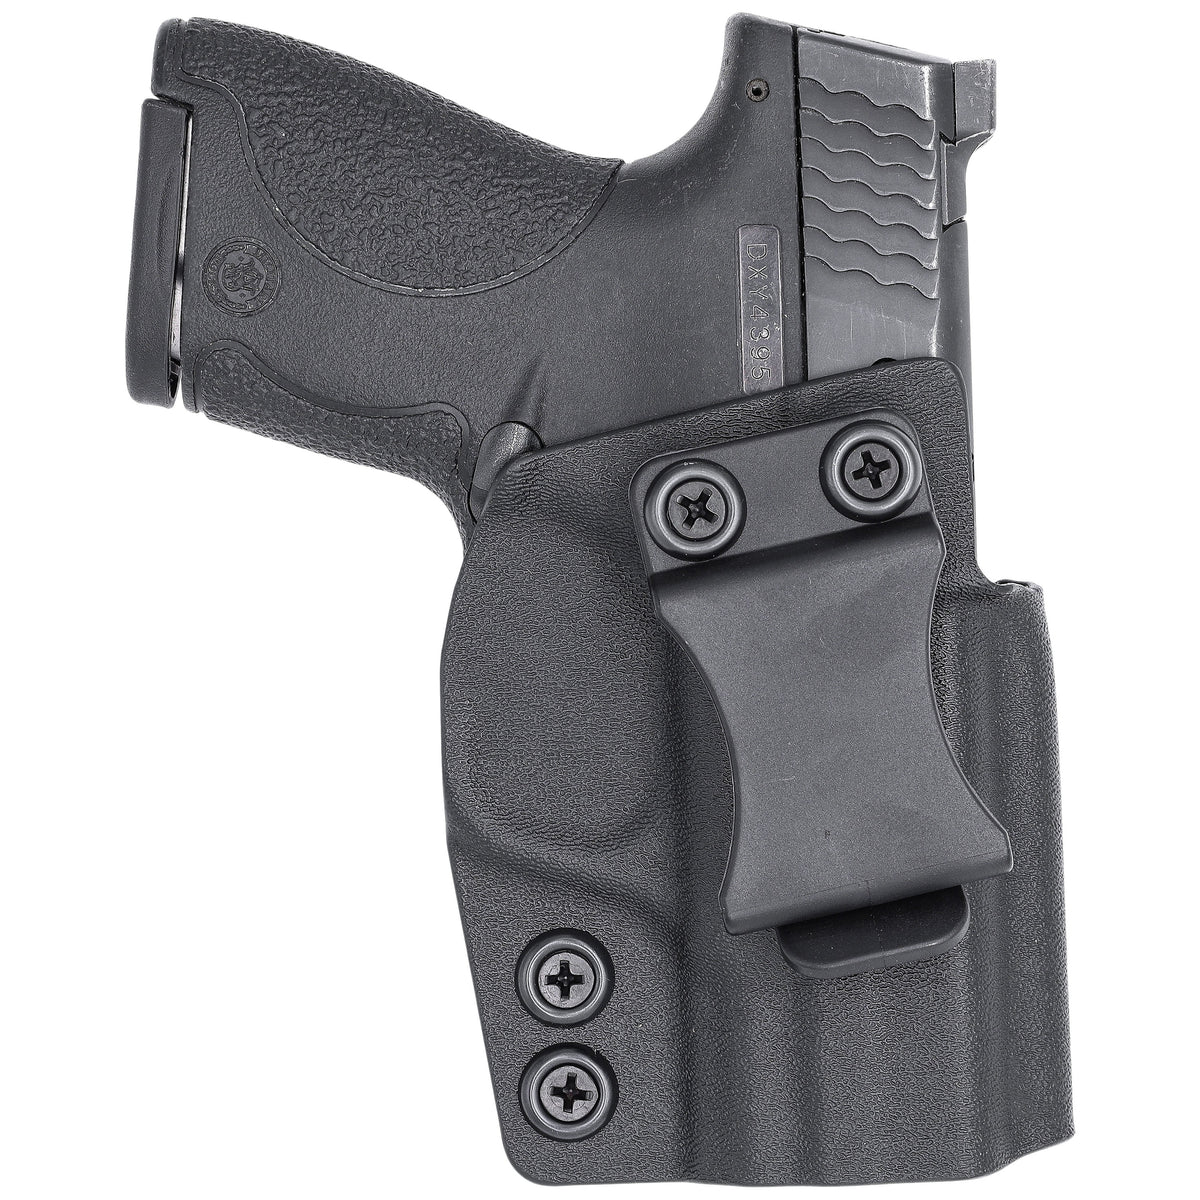 Smith & Wesson IWB Optics Ready - Concealed Carry Holsters